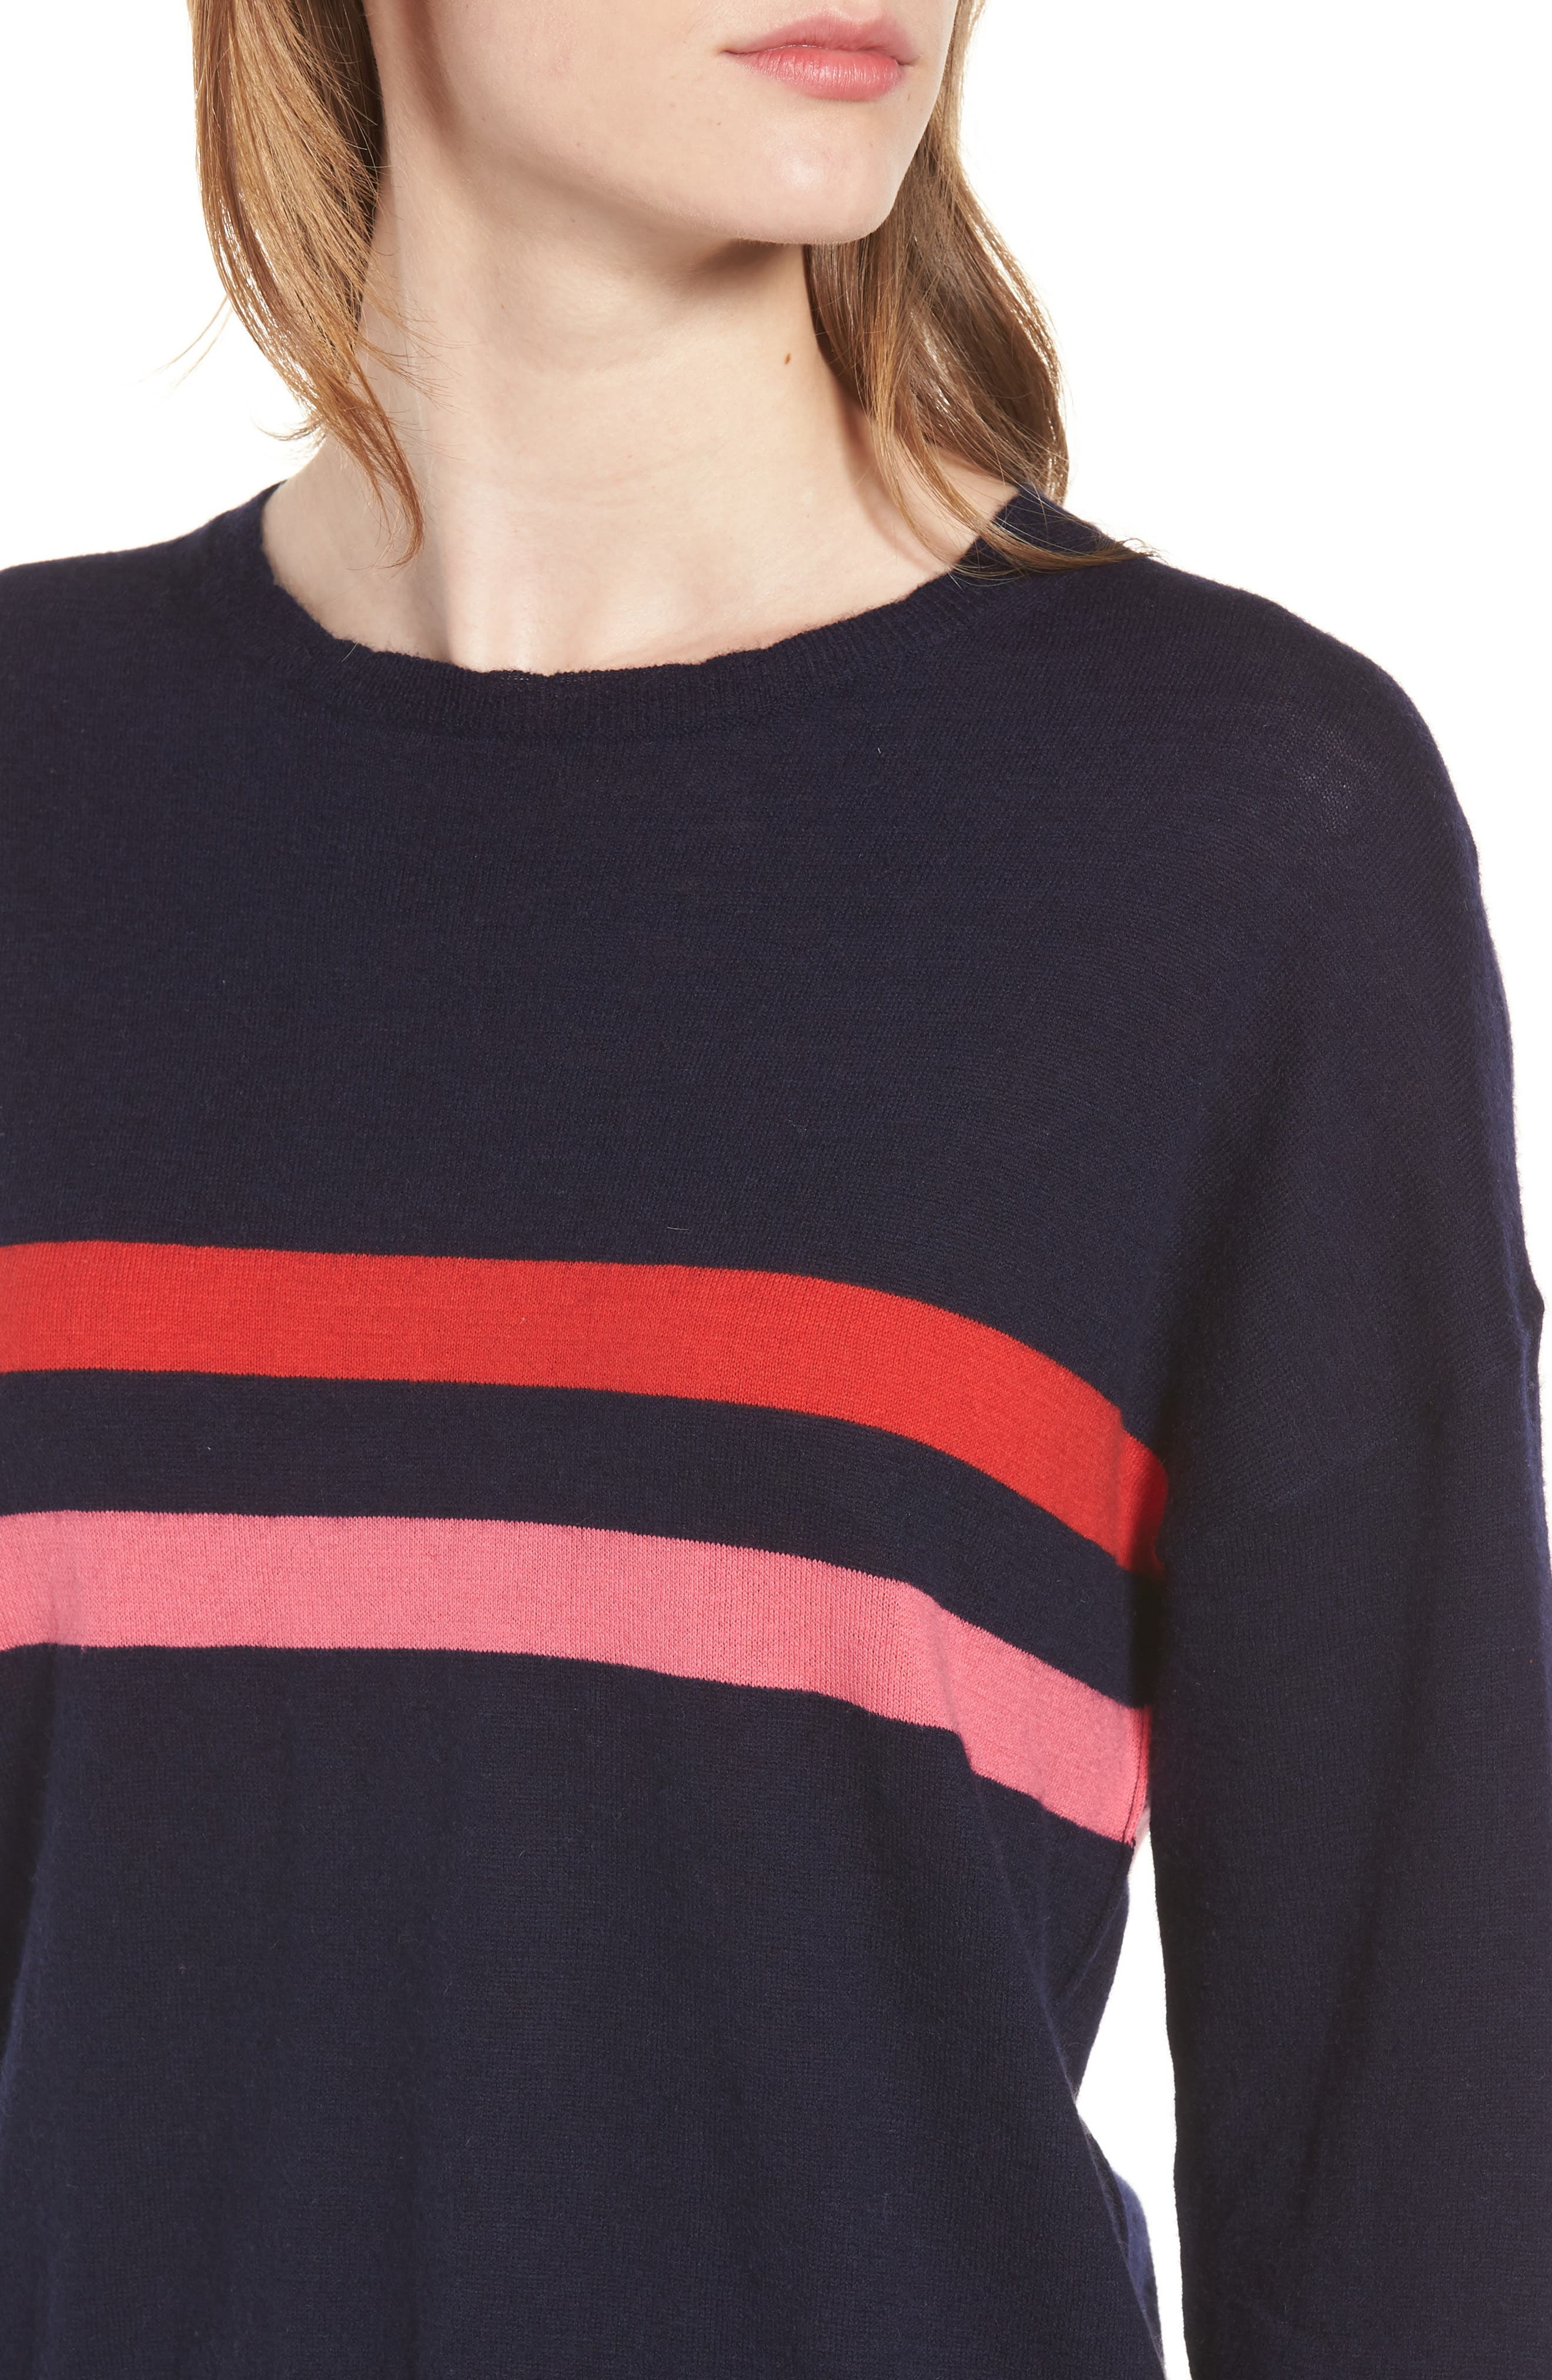 Stripe Wool & Cashmere Sweater,                             Alternate thumbnail 4, color,                             Navy